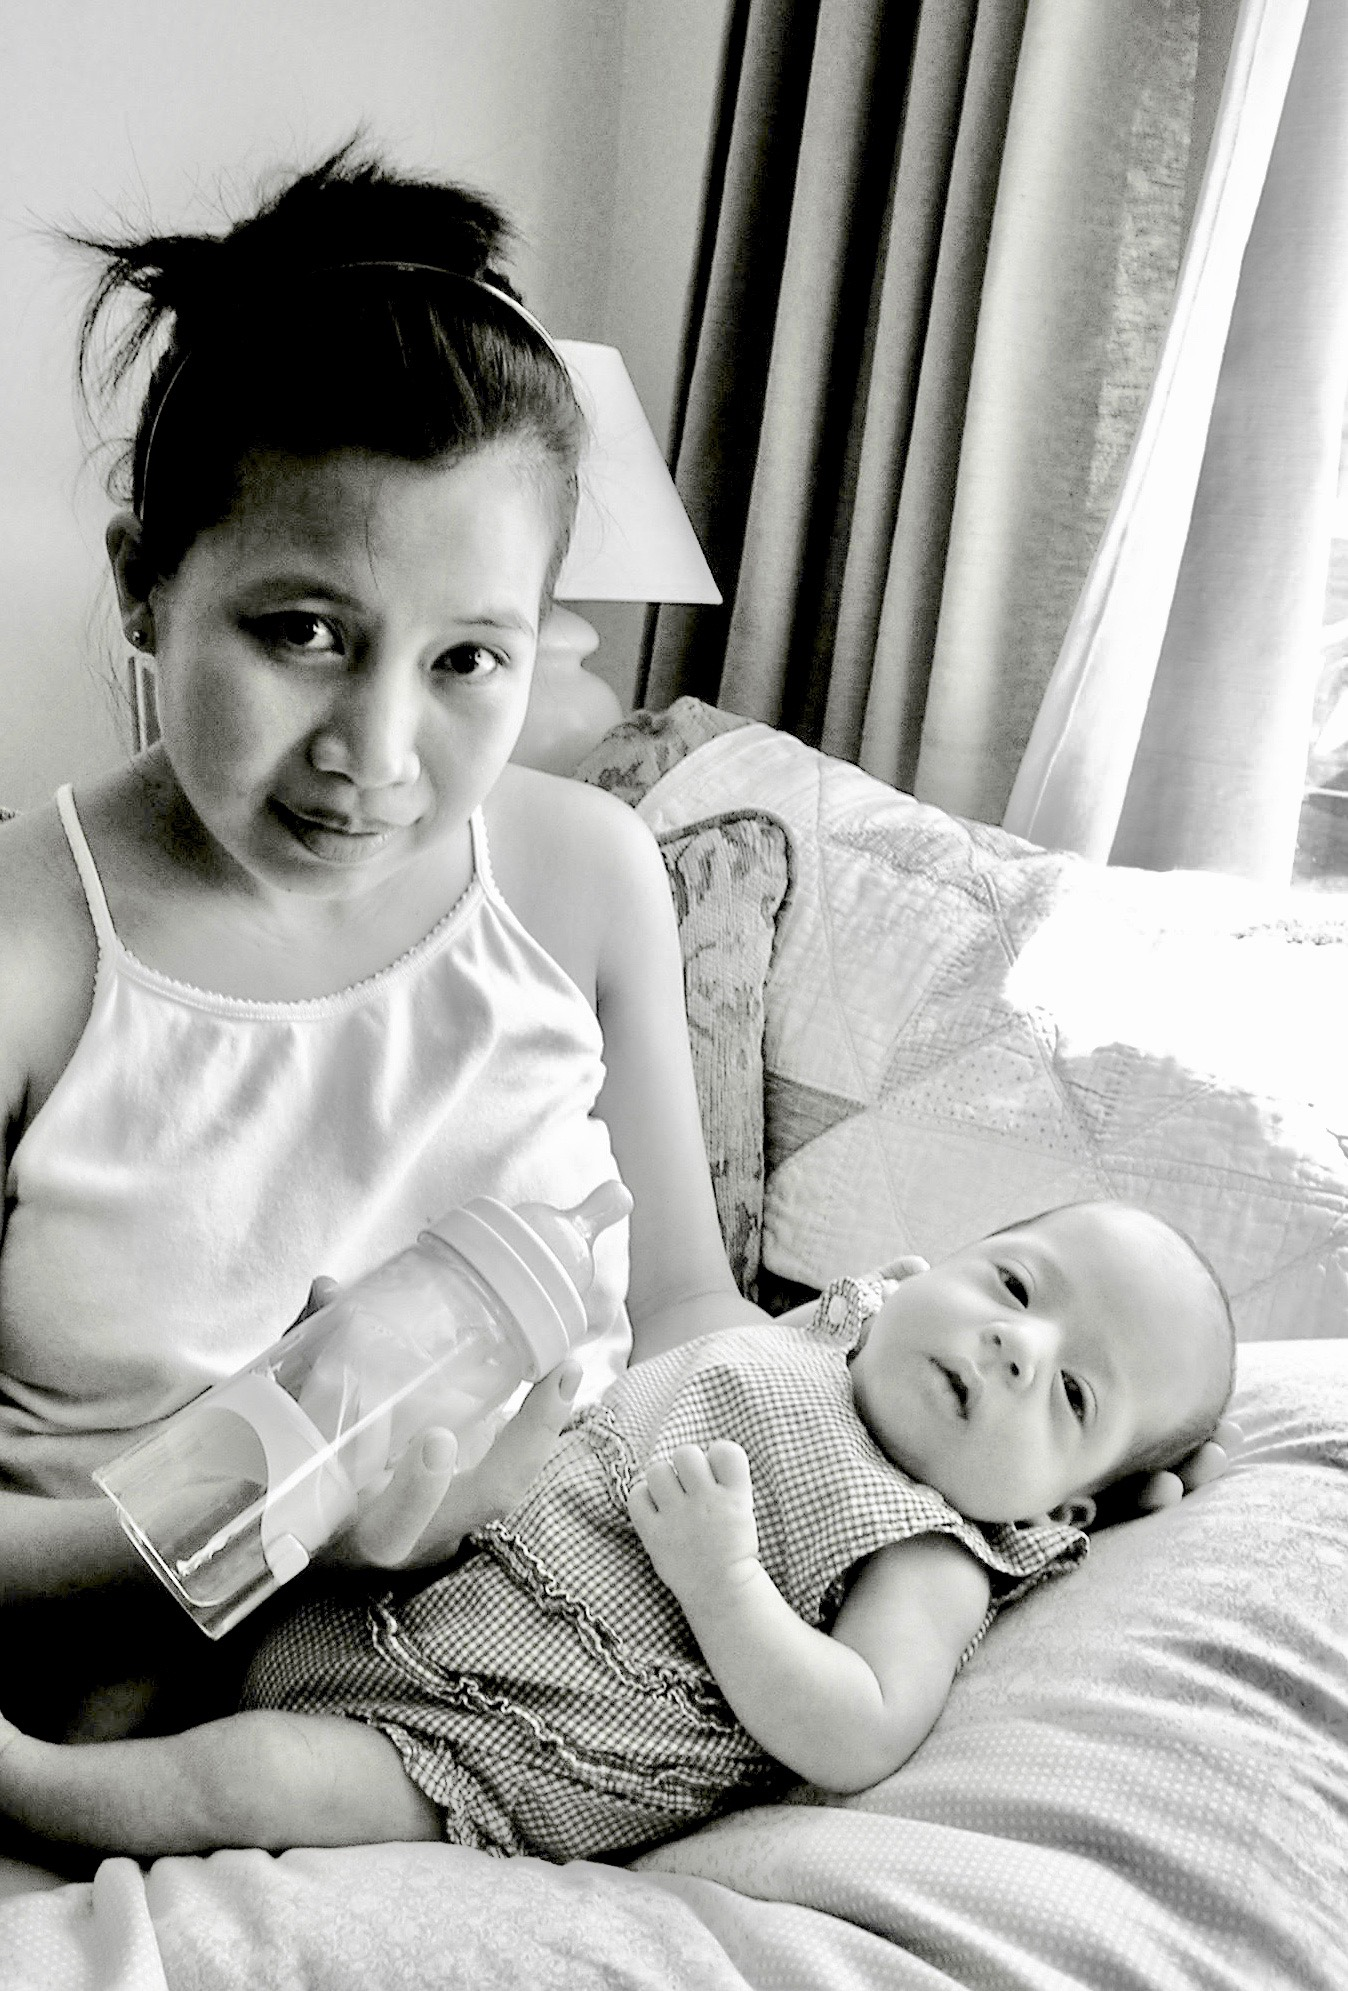 I had to pump and bottle- fed my preemie for two and a half month before she could nurse